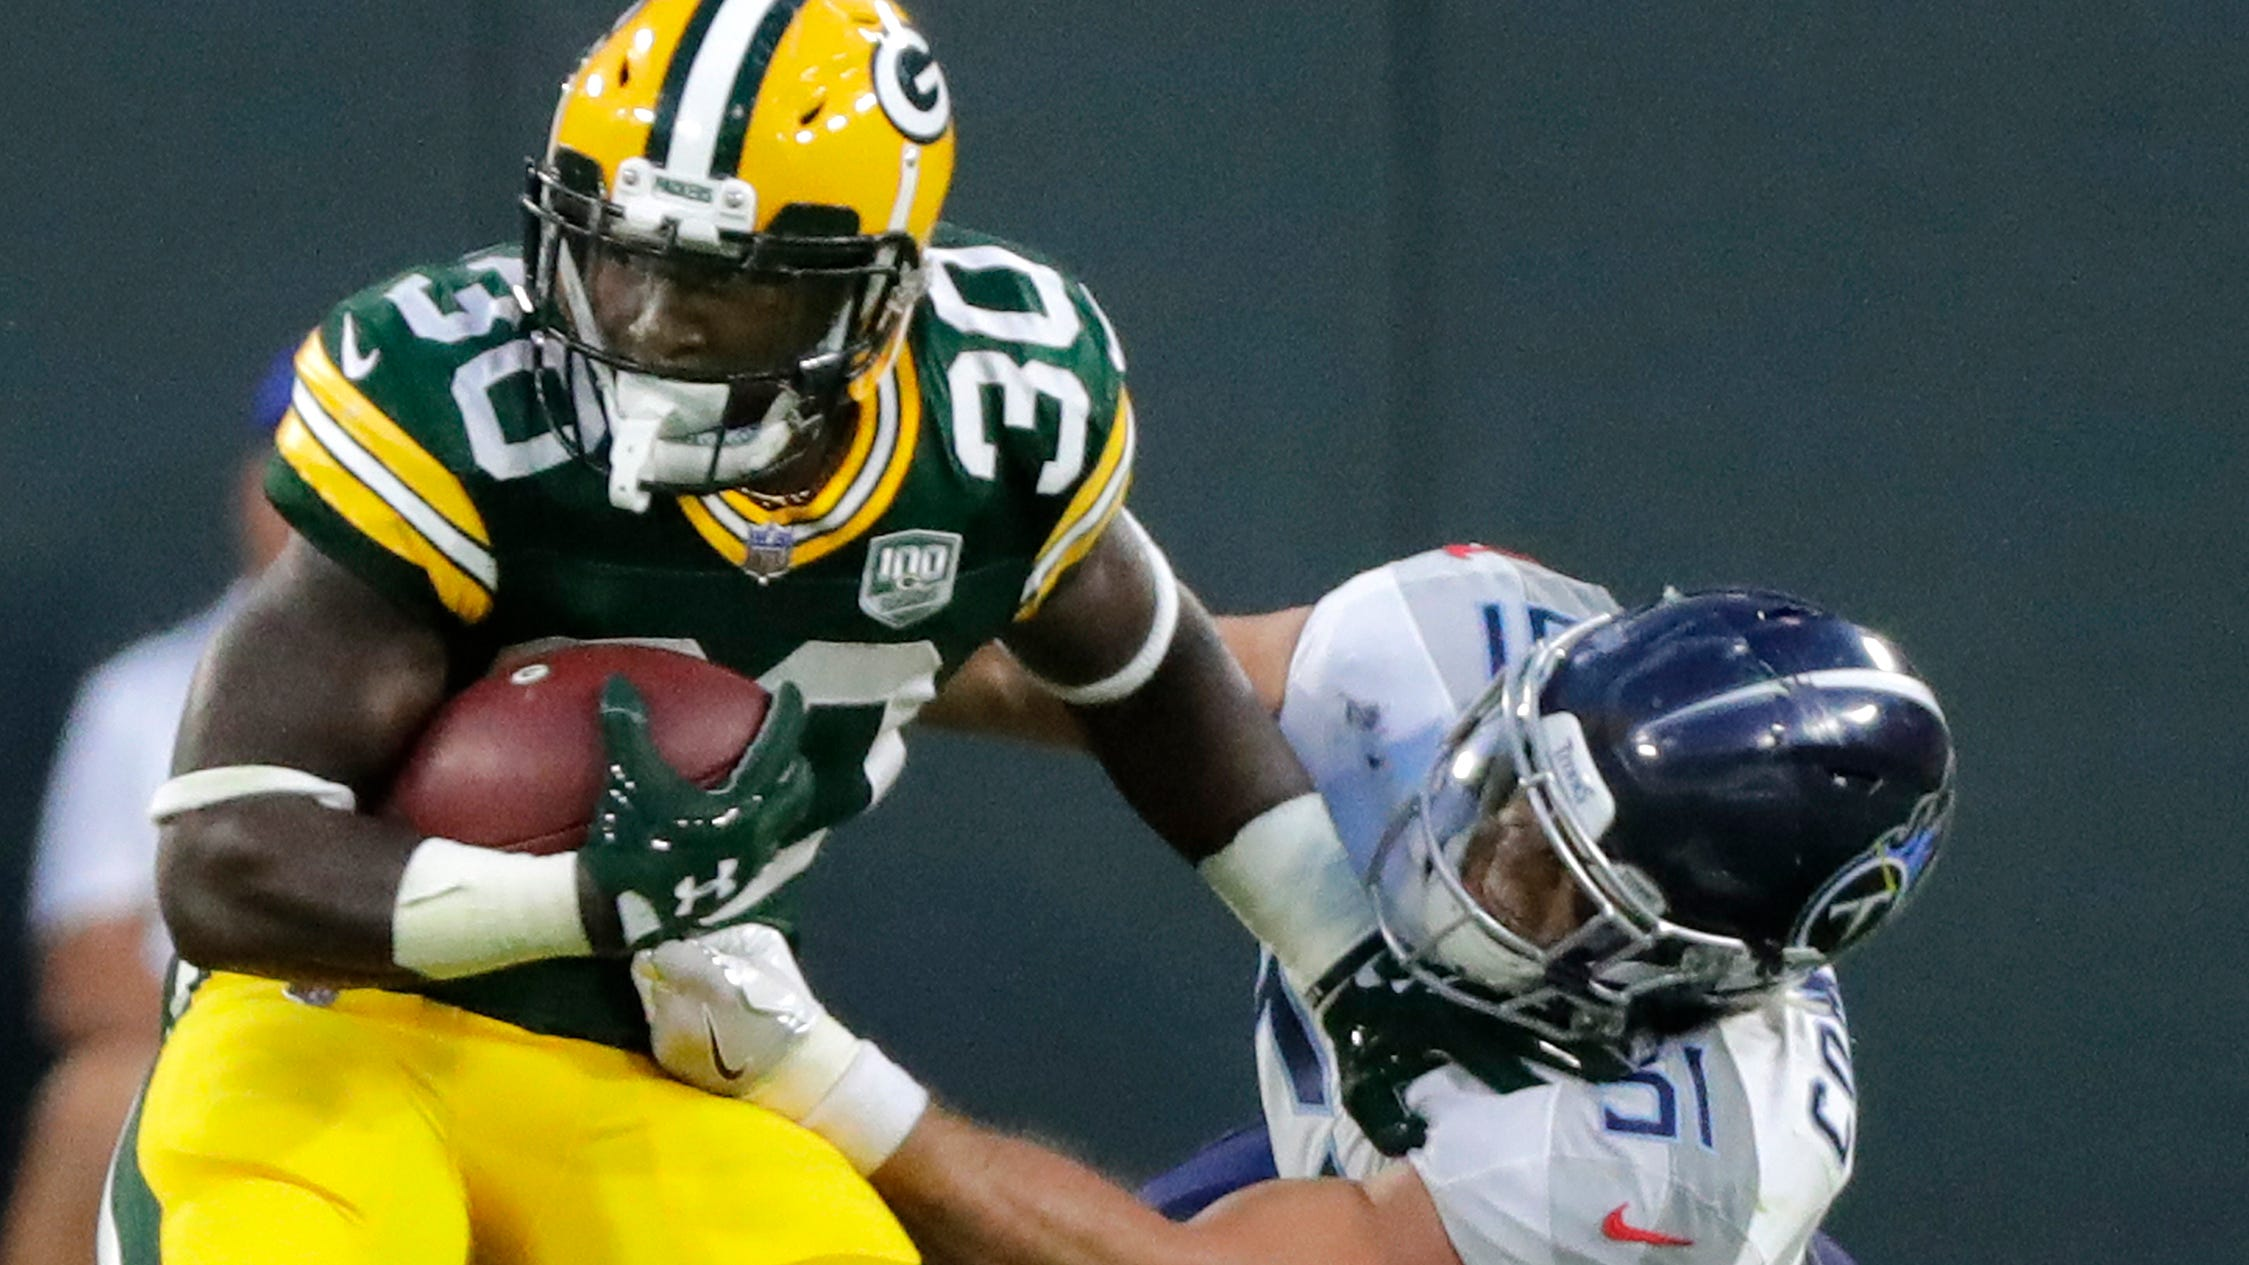 Green Bay Packers running back Jamaal Williams (30) rushes against the Tennessee Titans in the first half of an NFL preseason game at Lambeau Field on Thursday, August 9, 2018 in Green Bay, Wis.